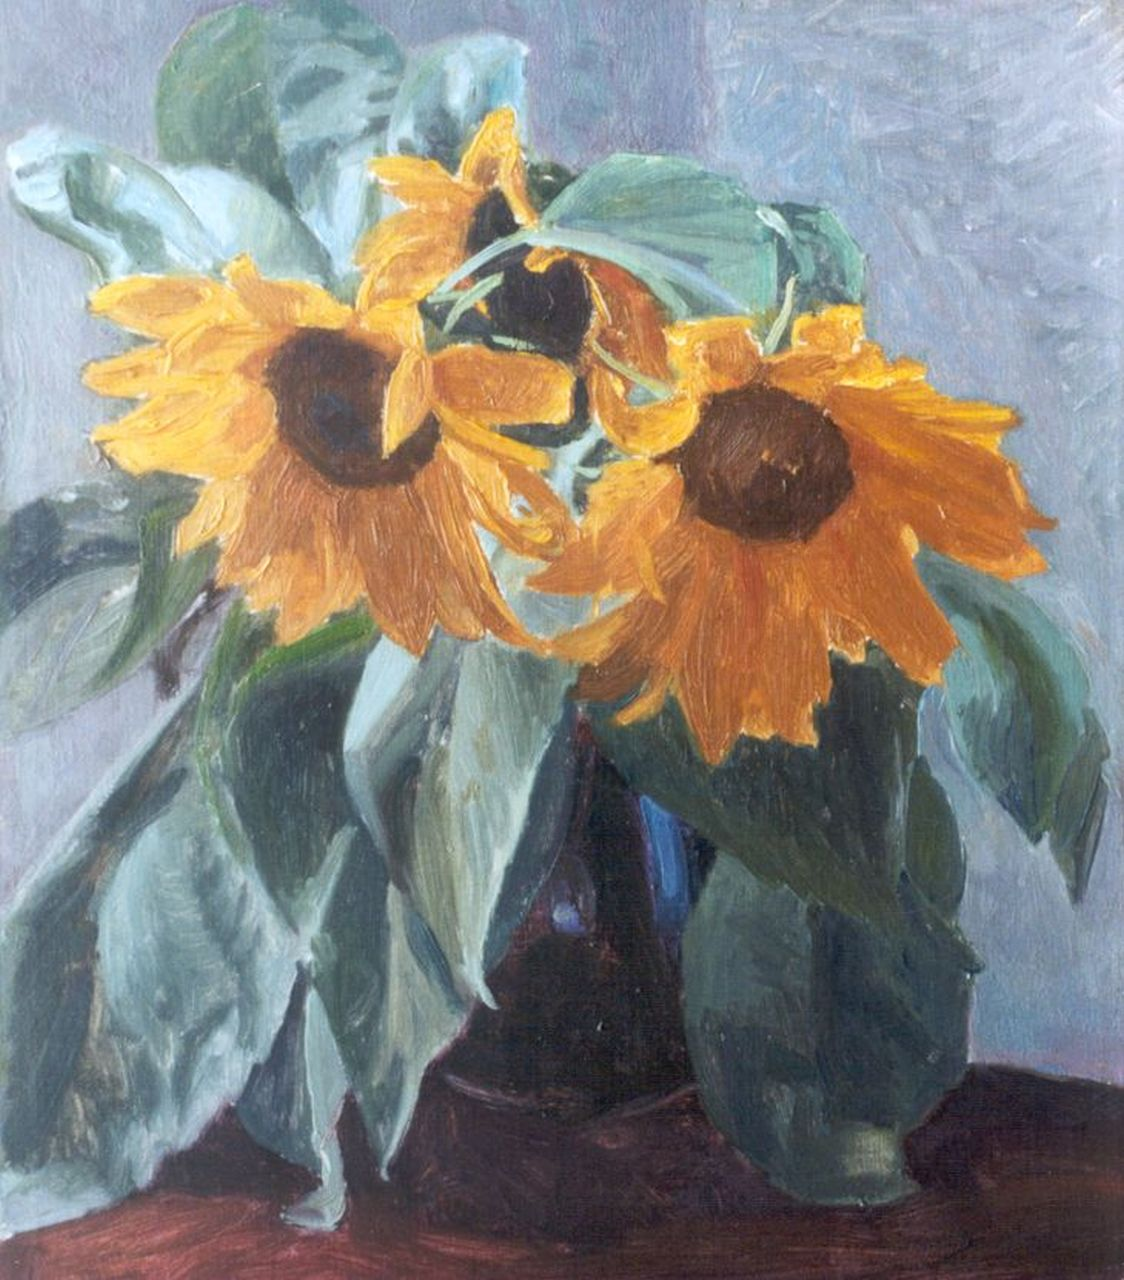 Altink J.  | Jan Altink, Sunflowers, oil on canvas 39.2 x 34.2 cm